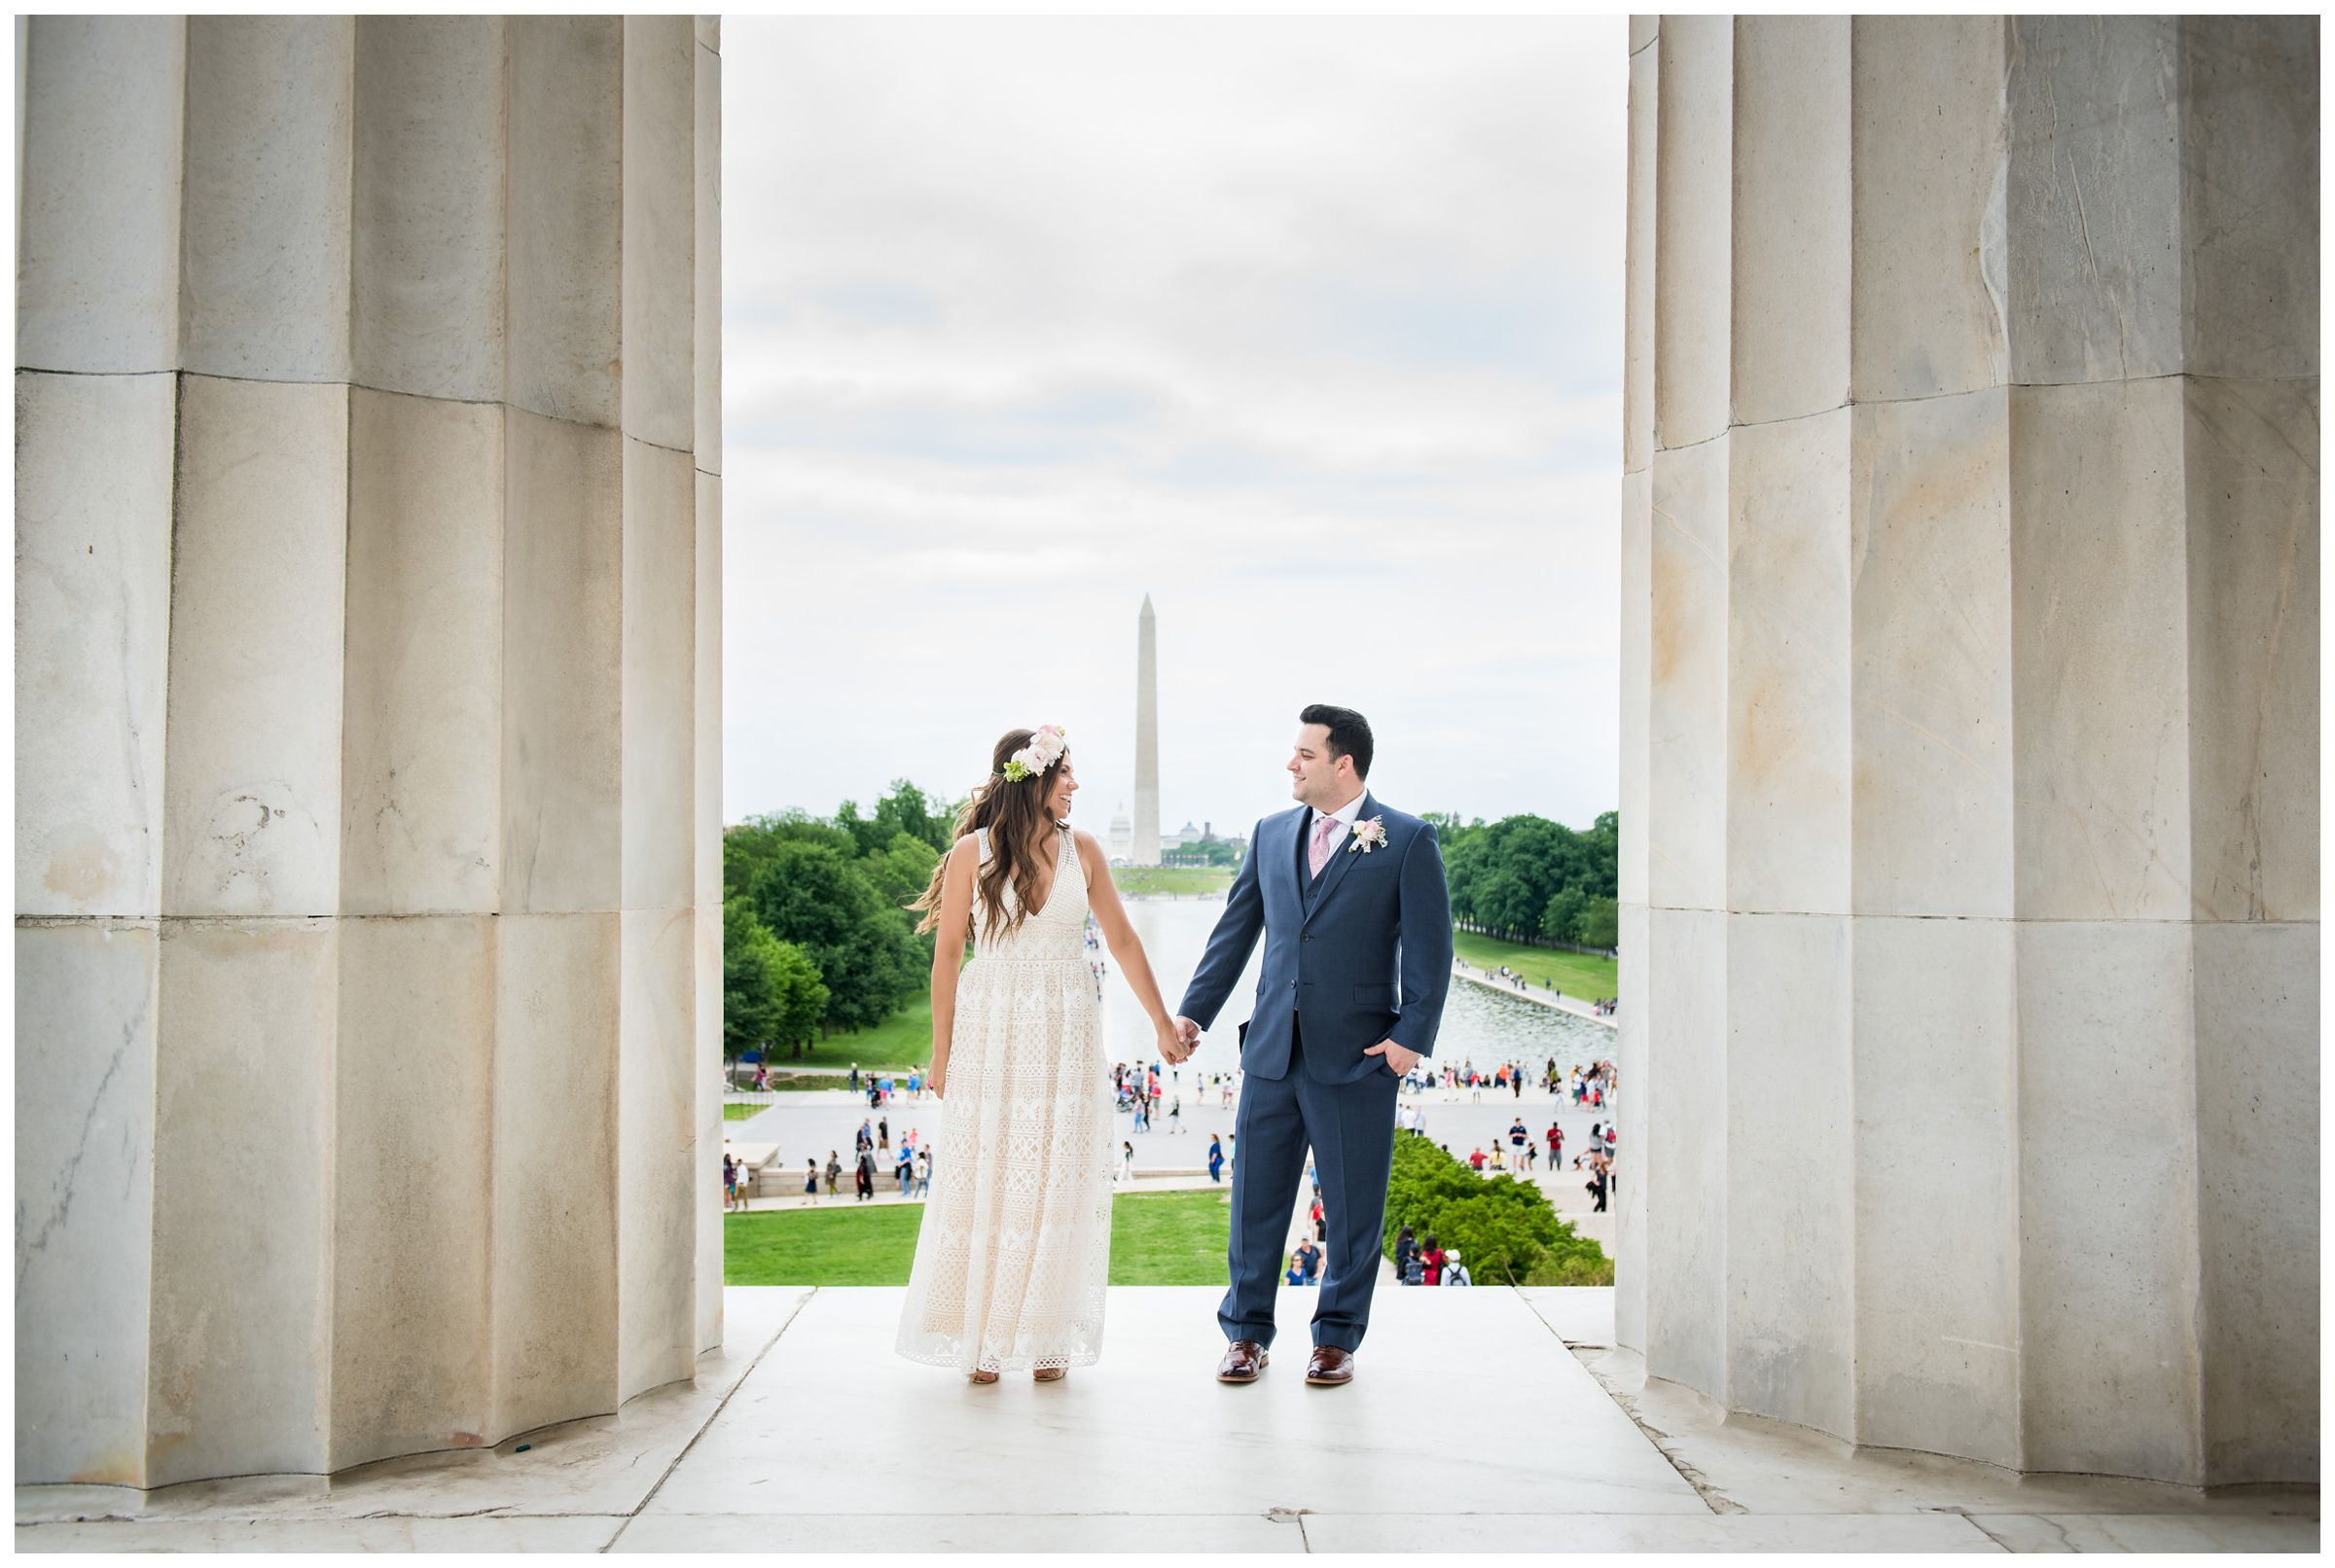 bride and groom portraits in front of reflecting pool and Washington Monument during DC monument wedding day on National Mall